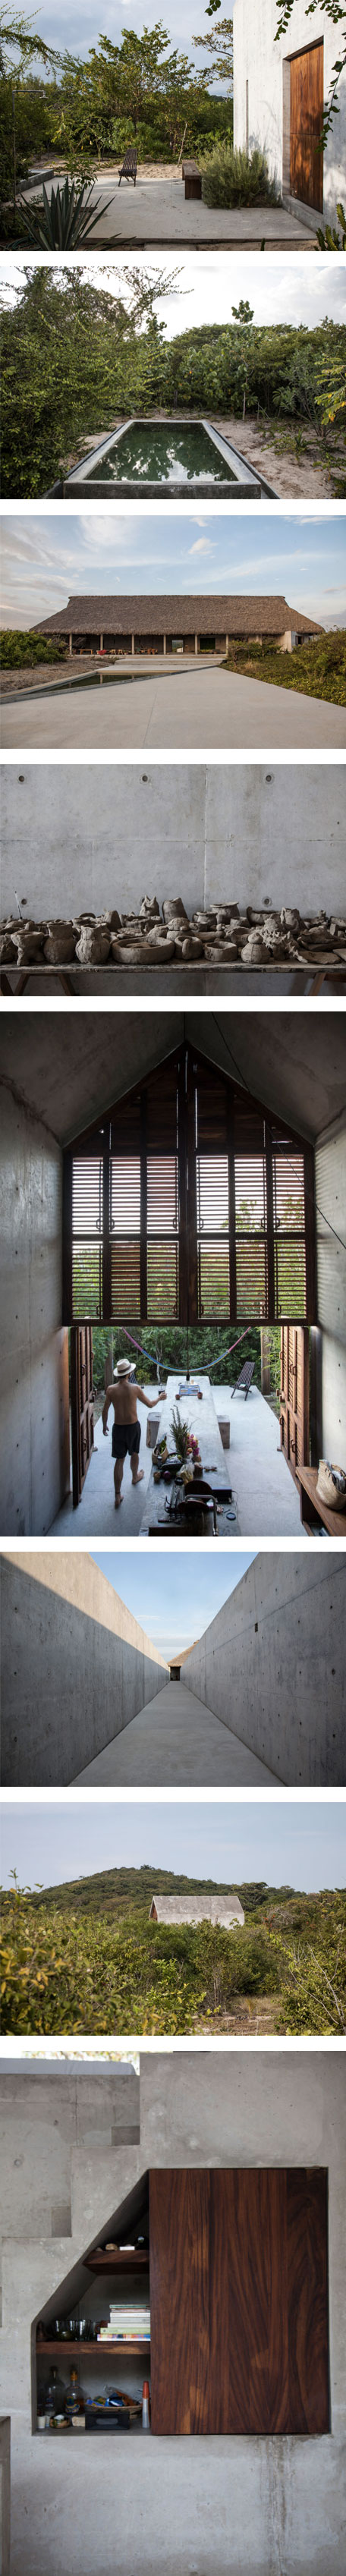 The Japanese art of imperfection at Casa Wabi in Mexico